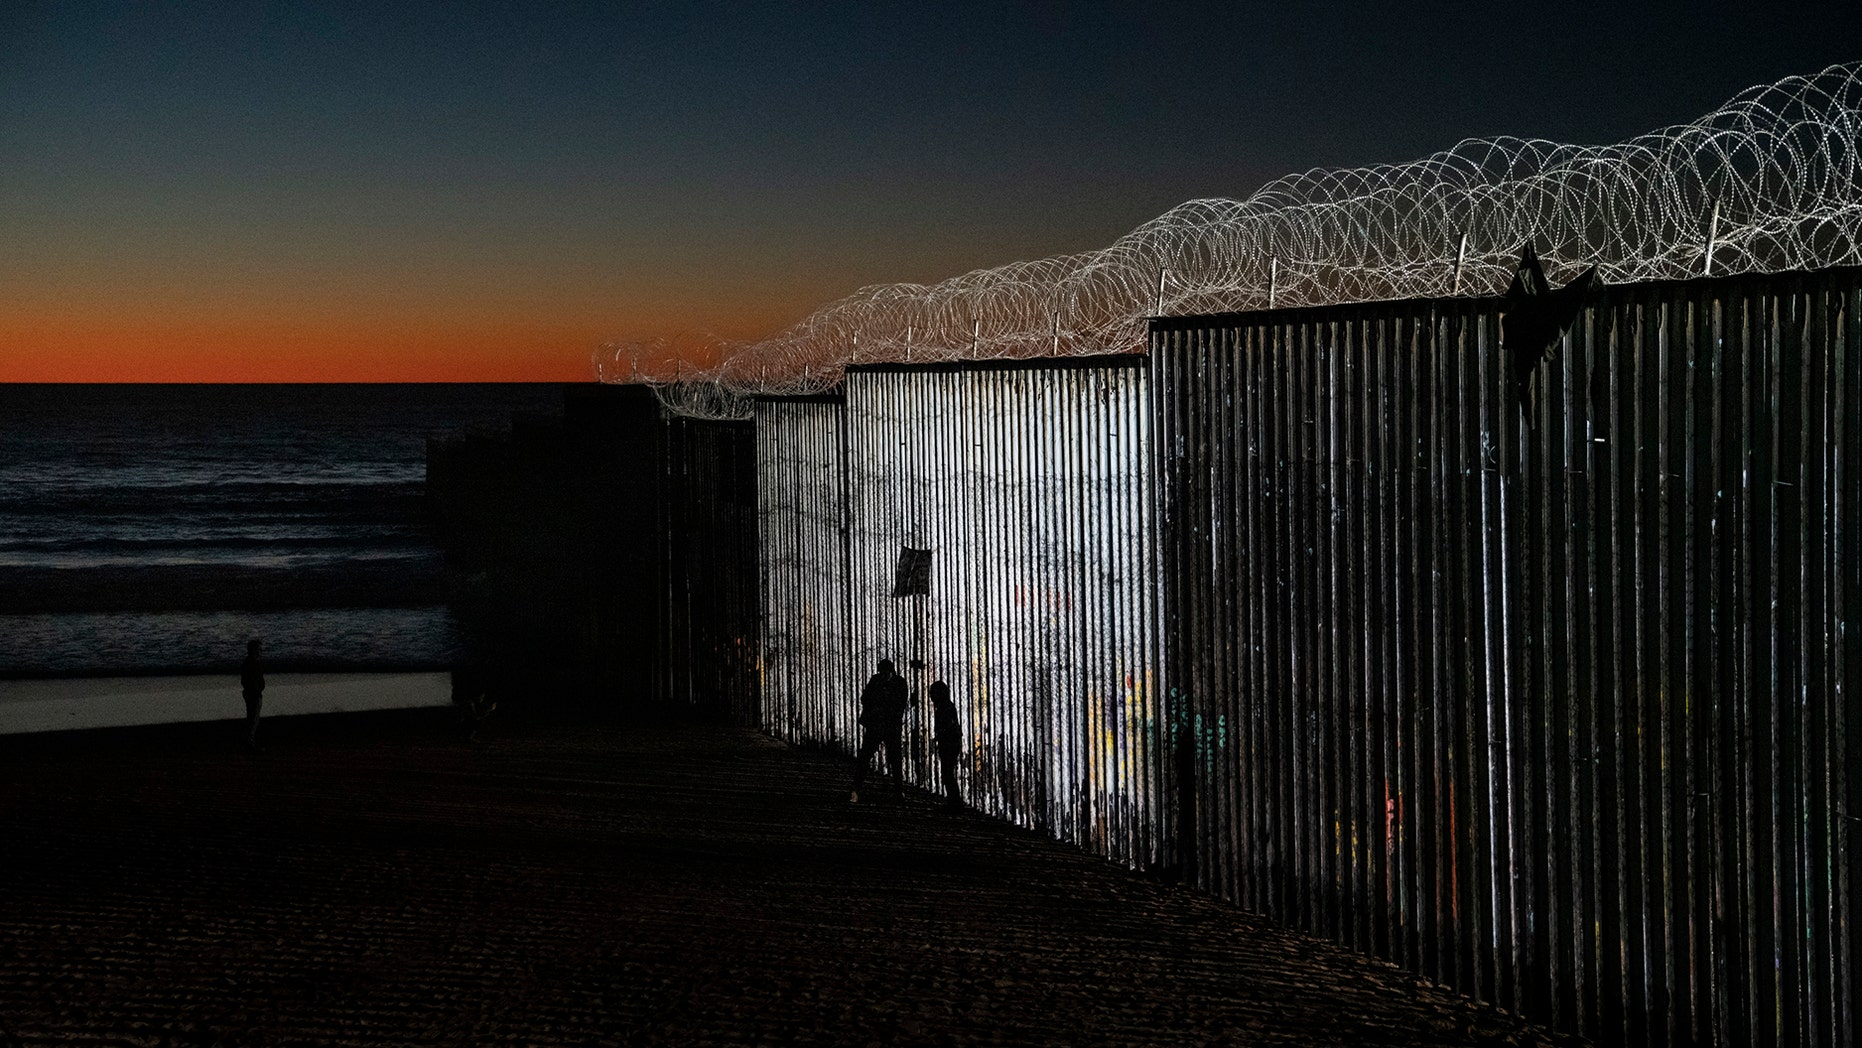 The border fence between San Diego, Calif., and Tijuana, Mexico, Wednesday, Jan. 2, 2019. (AP Photo/Daniel Ochoa de Olza)